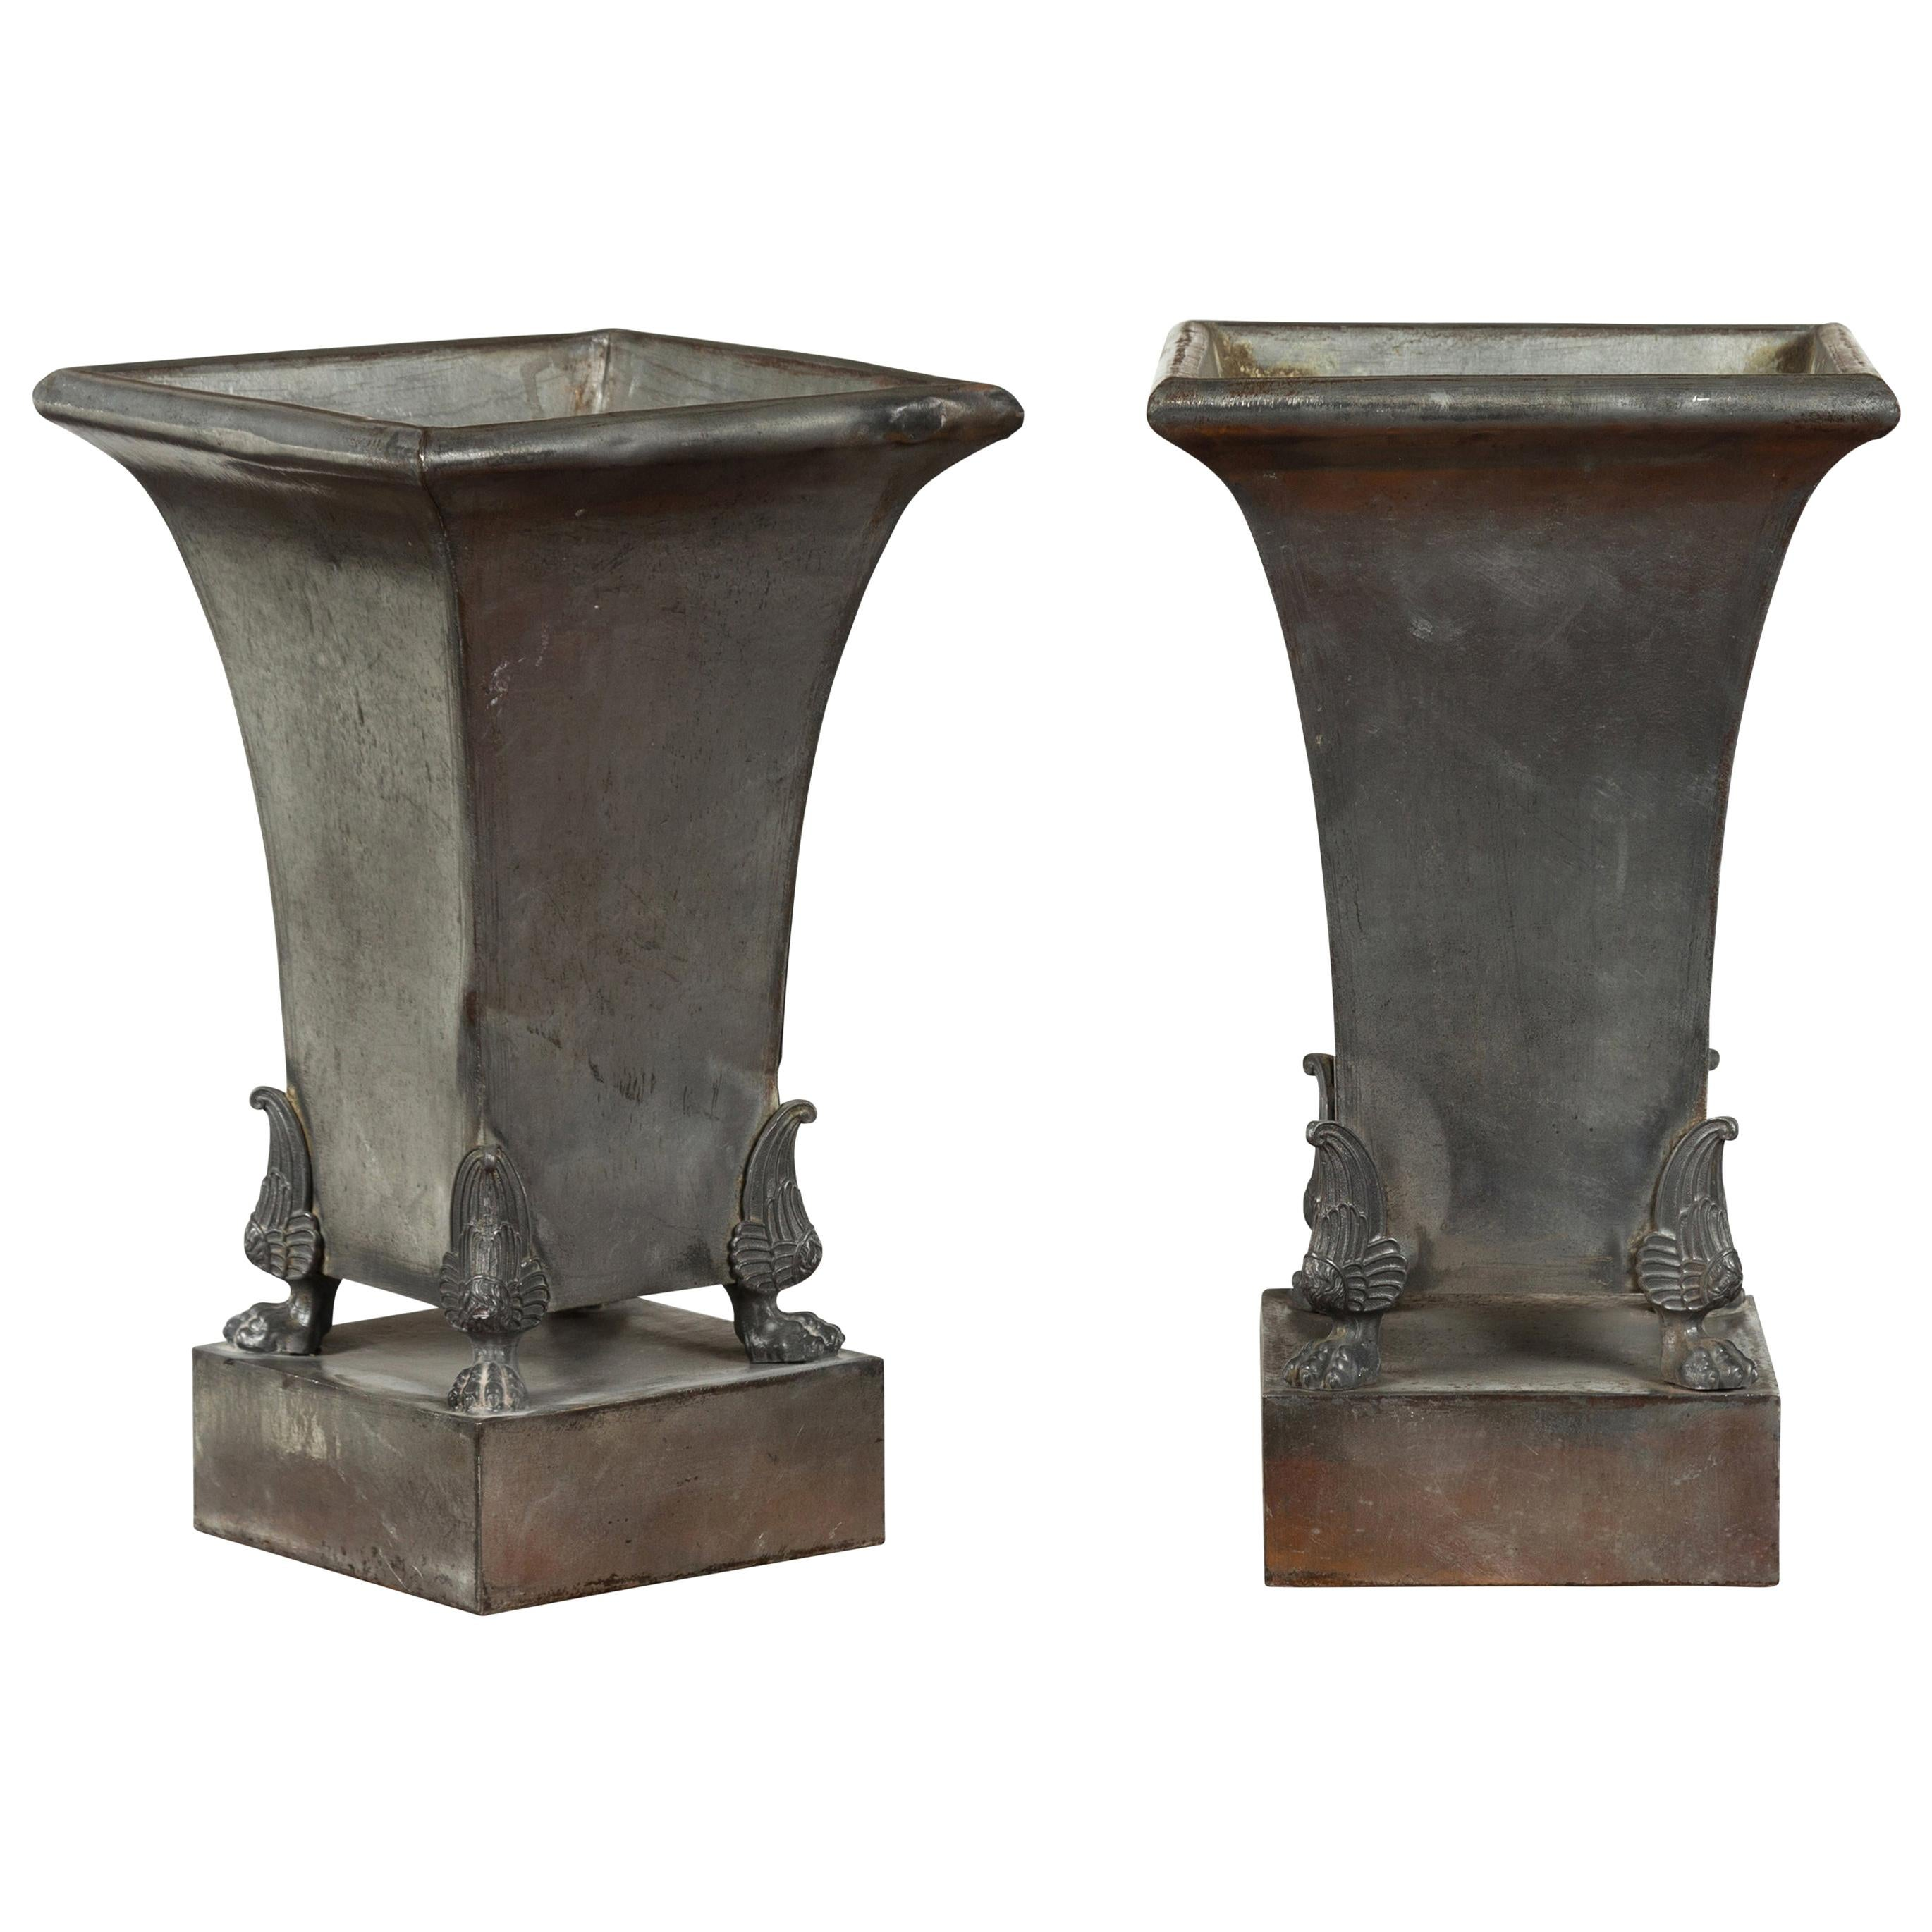 Pair of French 1920s Metal Copper Lined Planters with Empire Style Winged Paws